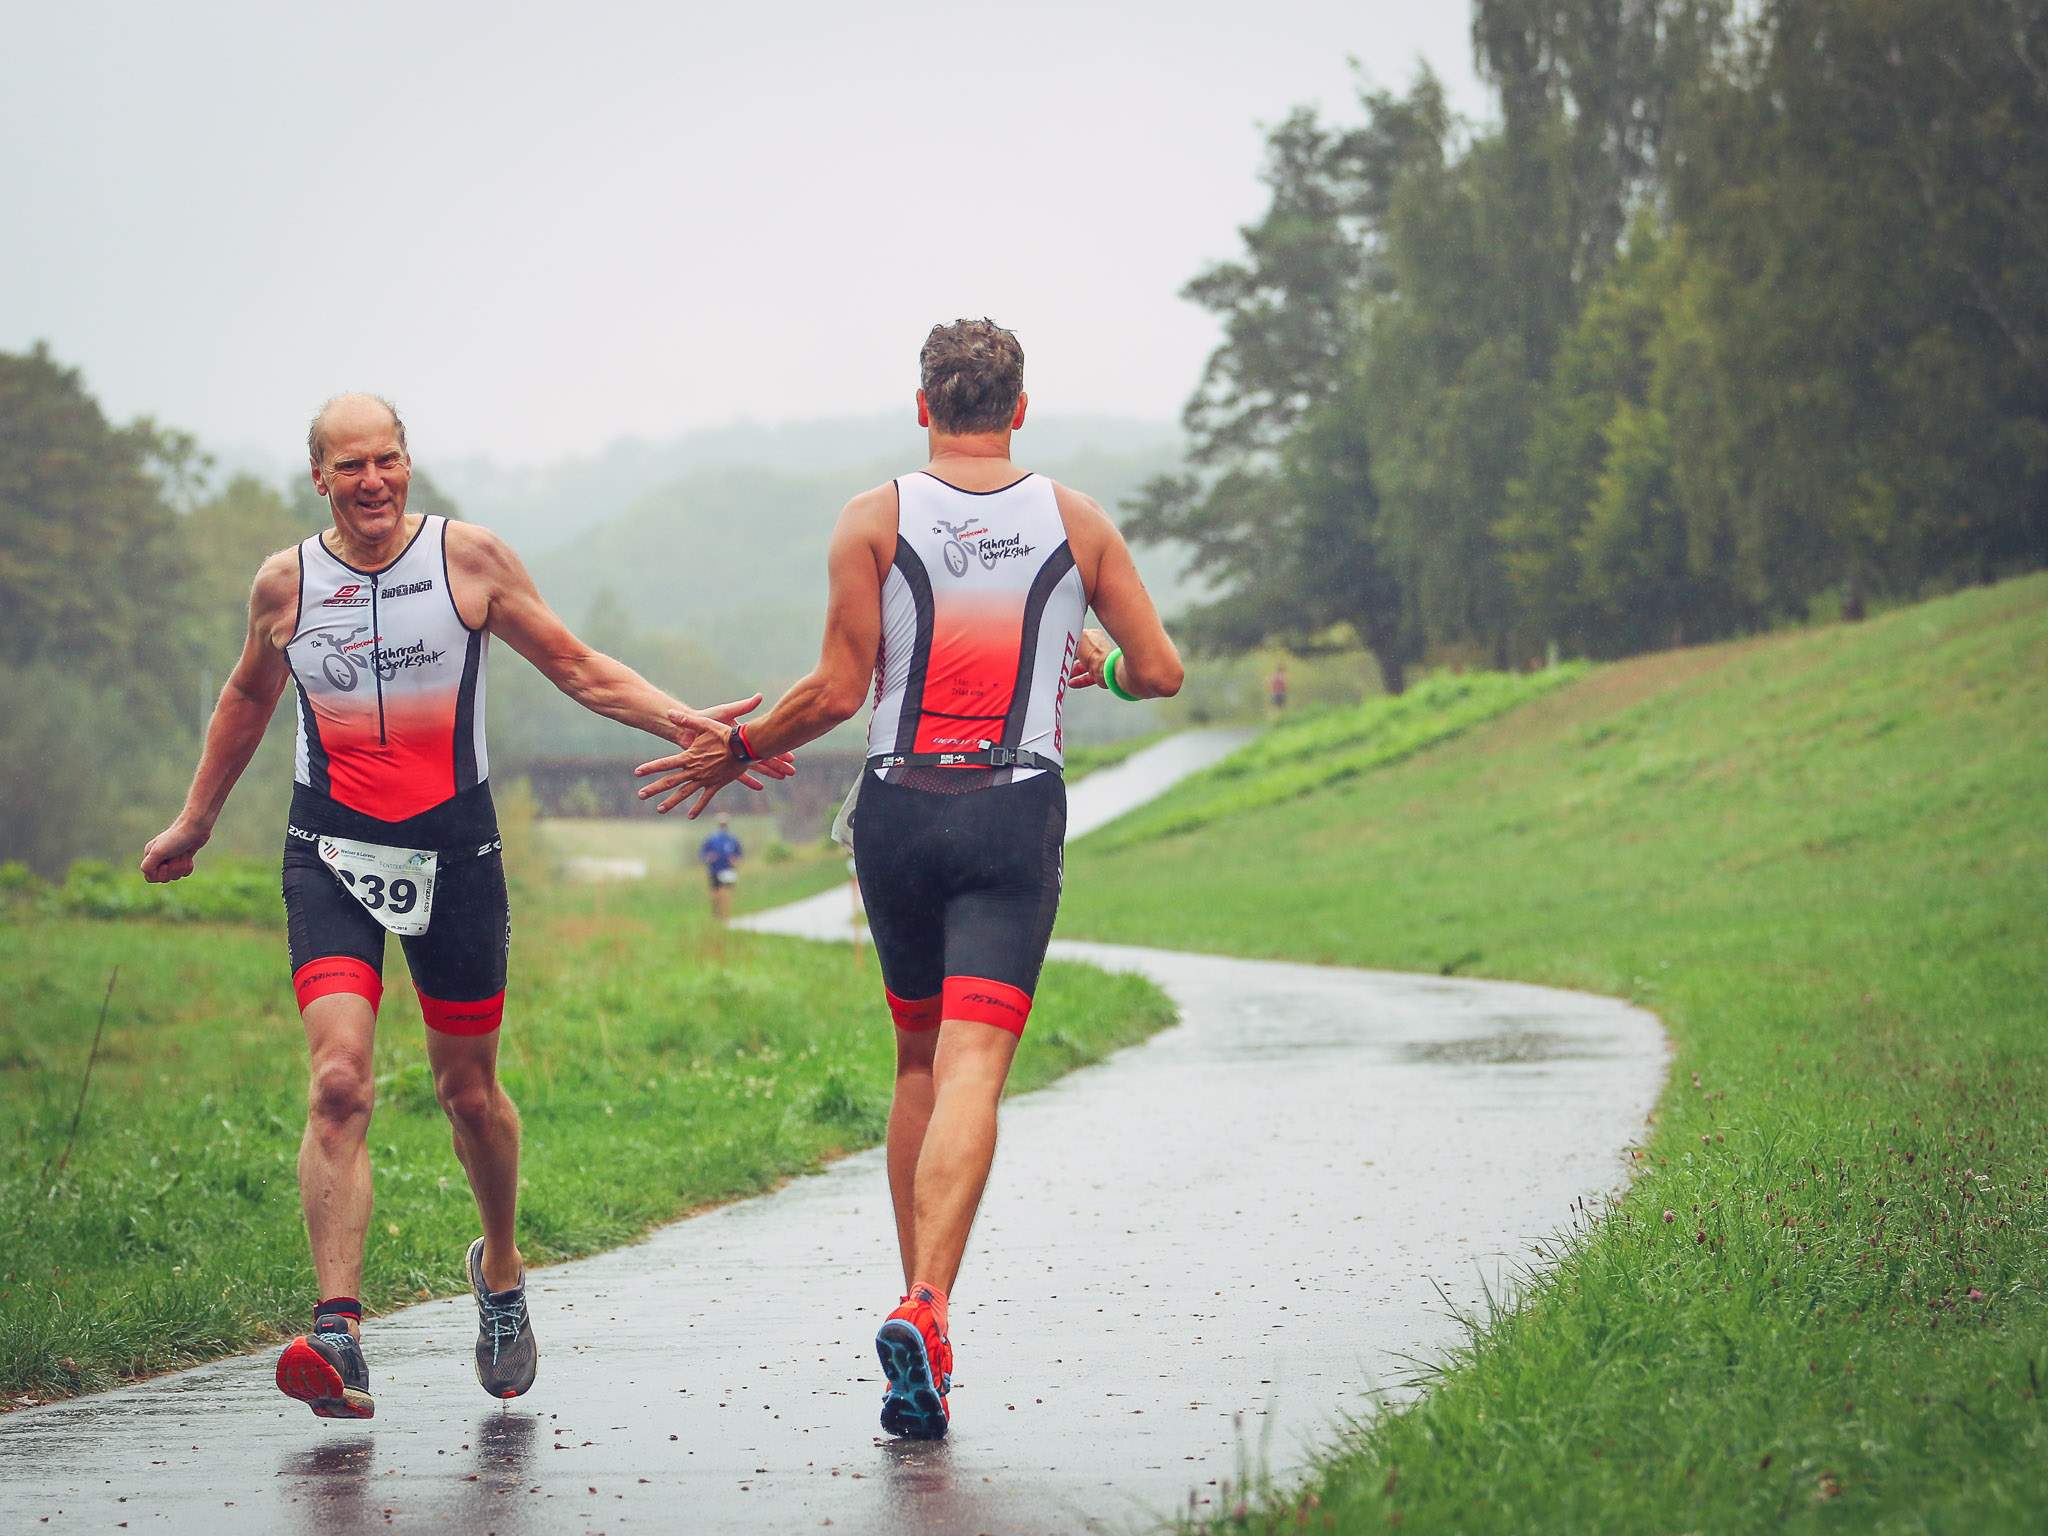 Zwickauer Triathlon 2018 10 original